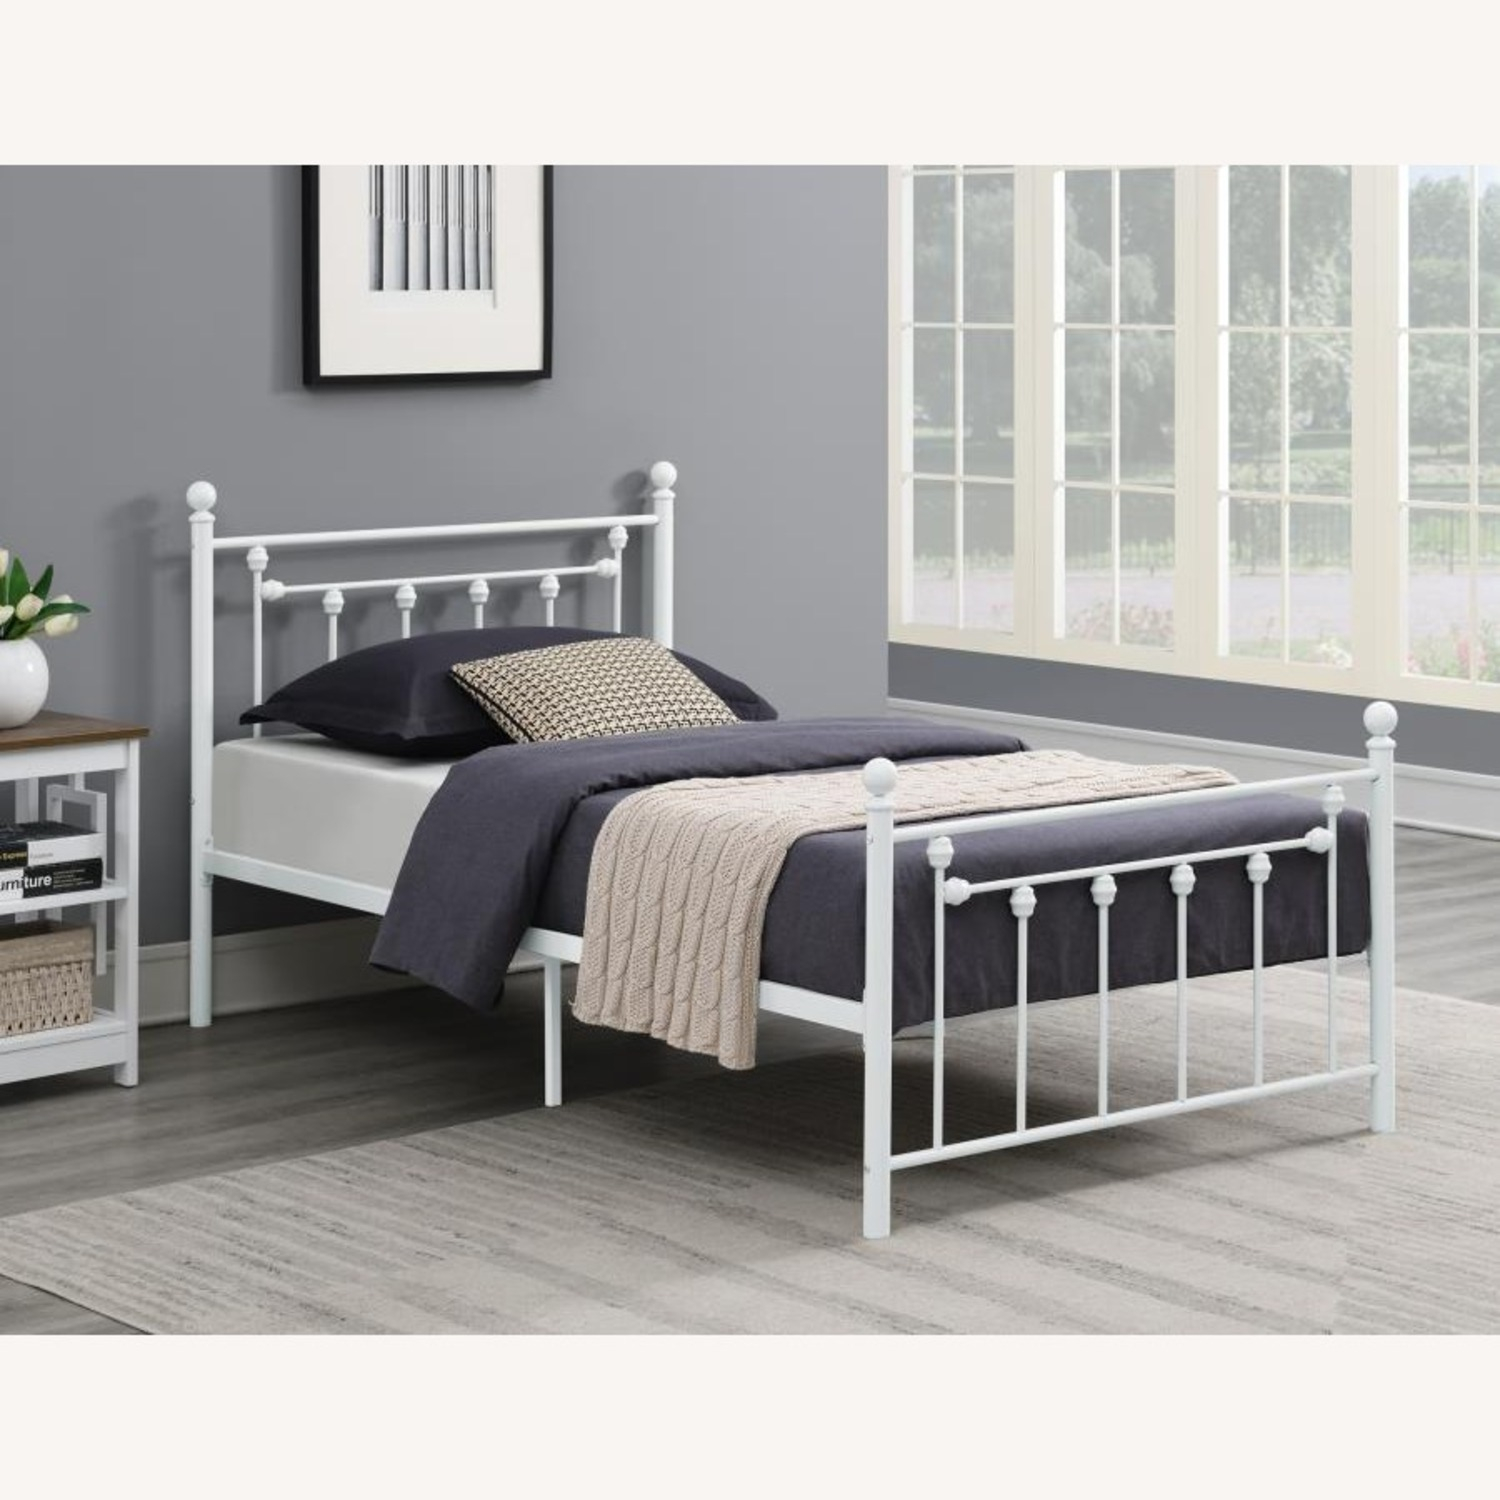 Full Bed In Matte White Powder Coated Finish - image-2